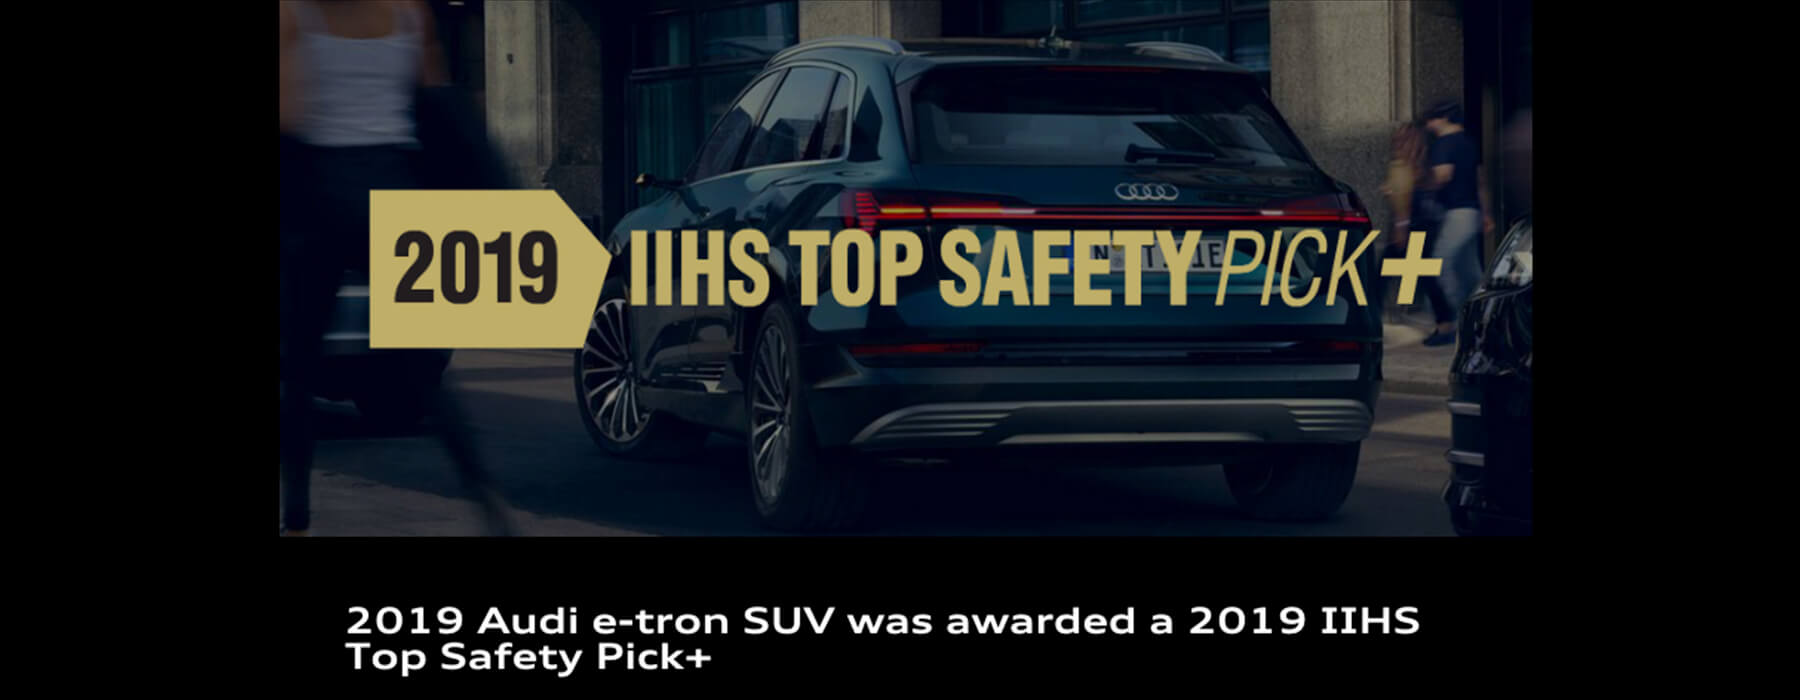 5-Star Safety Rating. More Stars, Safer Cars. US Department of Transportation. 2019 e-tron awarded a NHTSA 5-Star Overall Safety Rating. In the background, blue Audi SUV is towing a row-boat down a road next to the water.